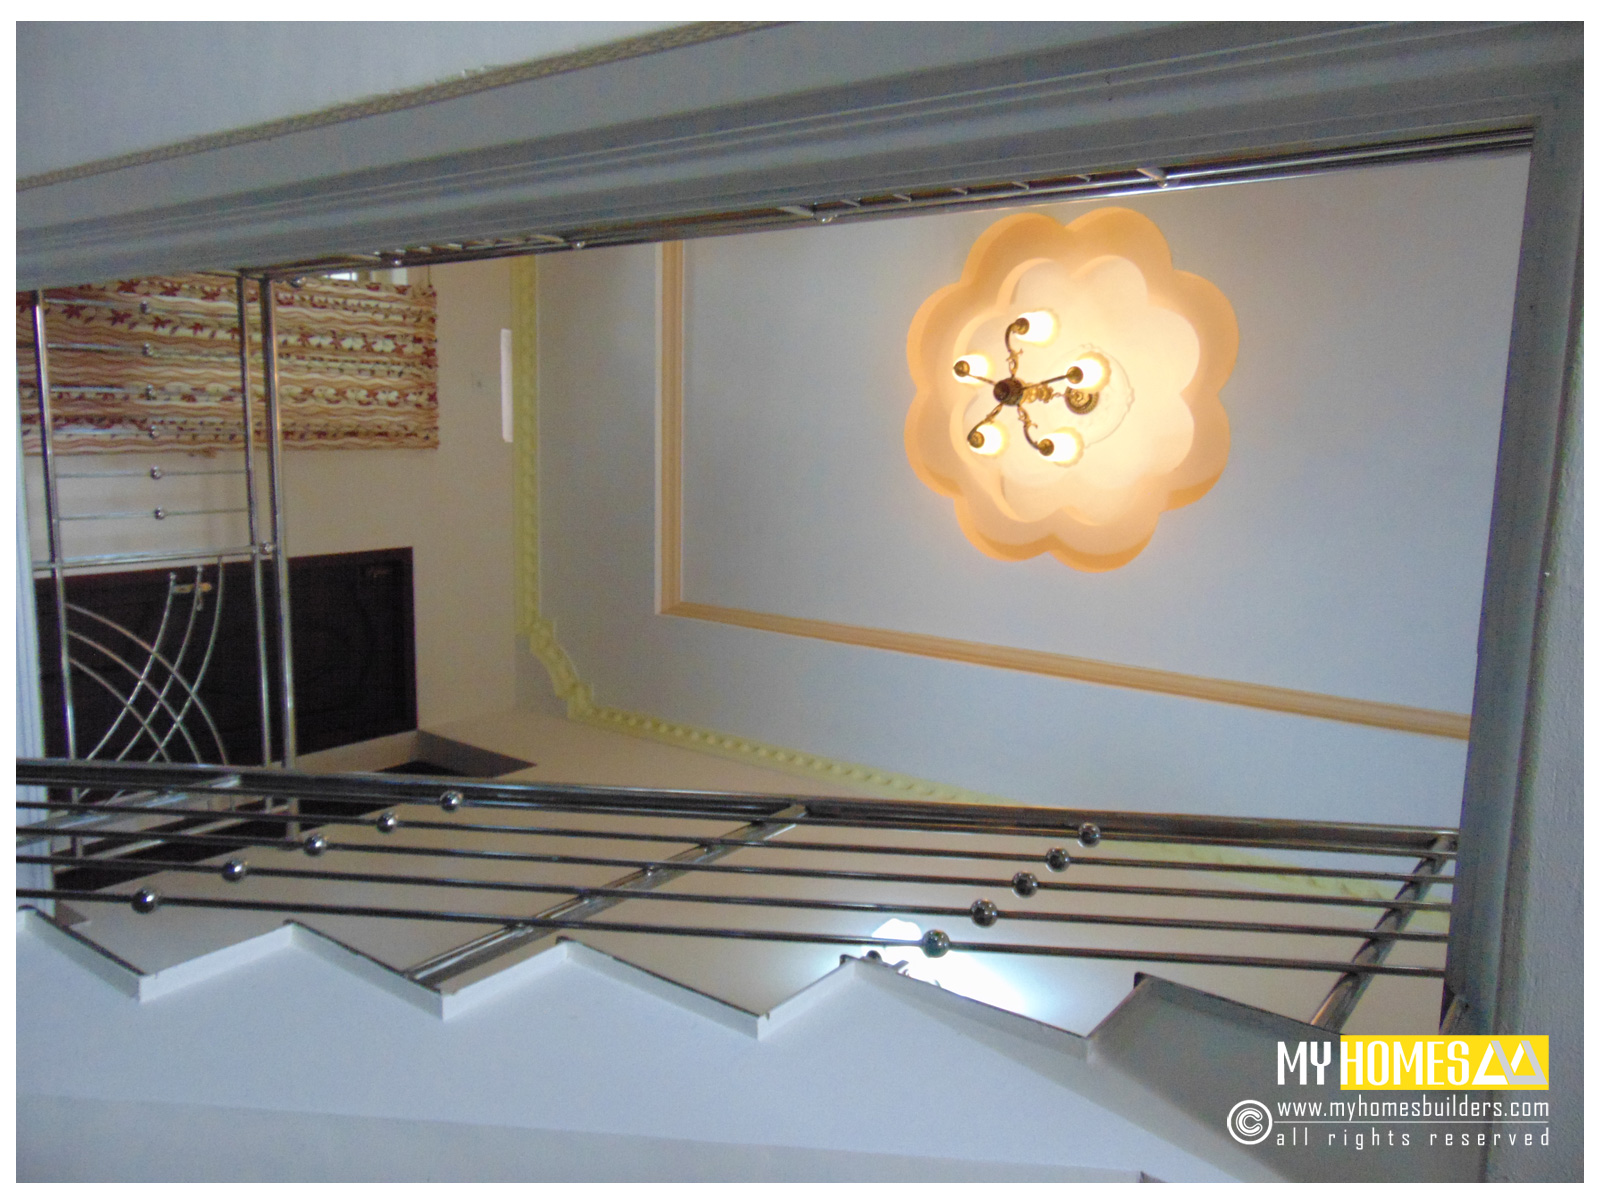 kerala homes staircase designs, kerala homes designs, staircase interior, staircase interior designs ideas